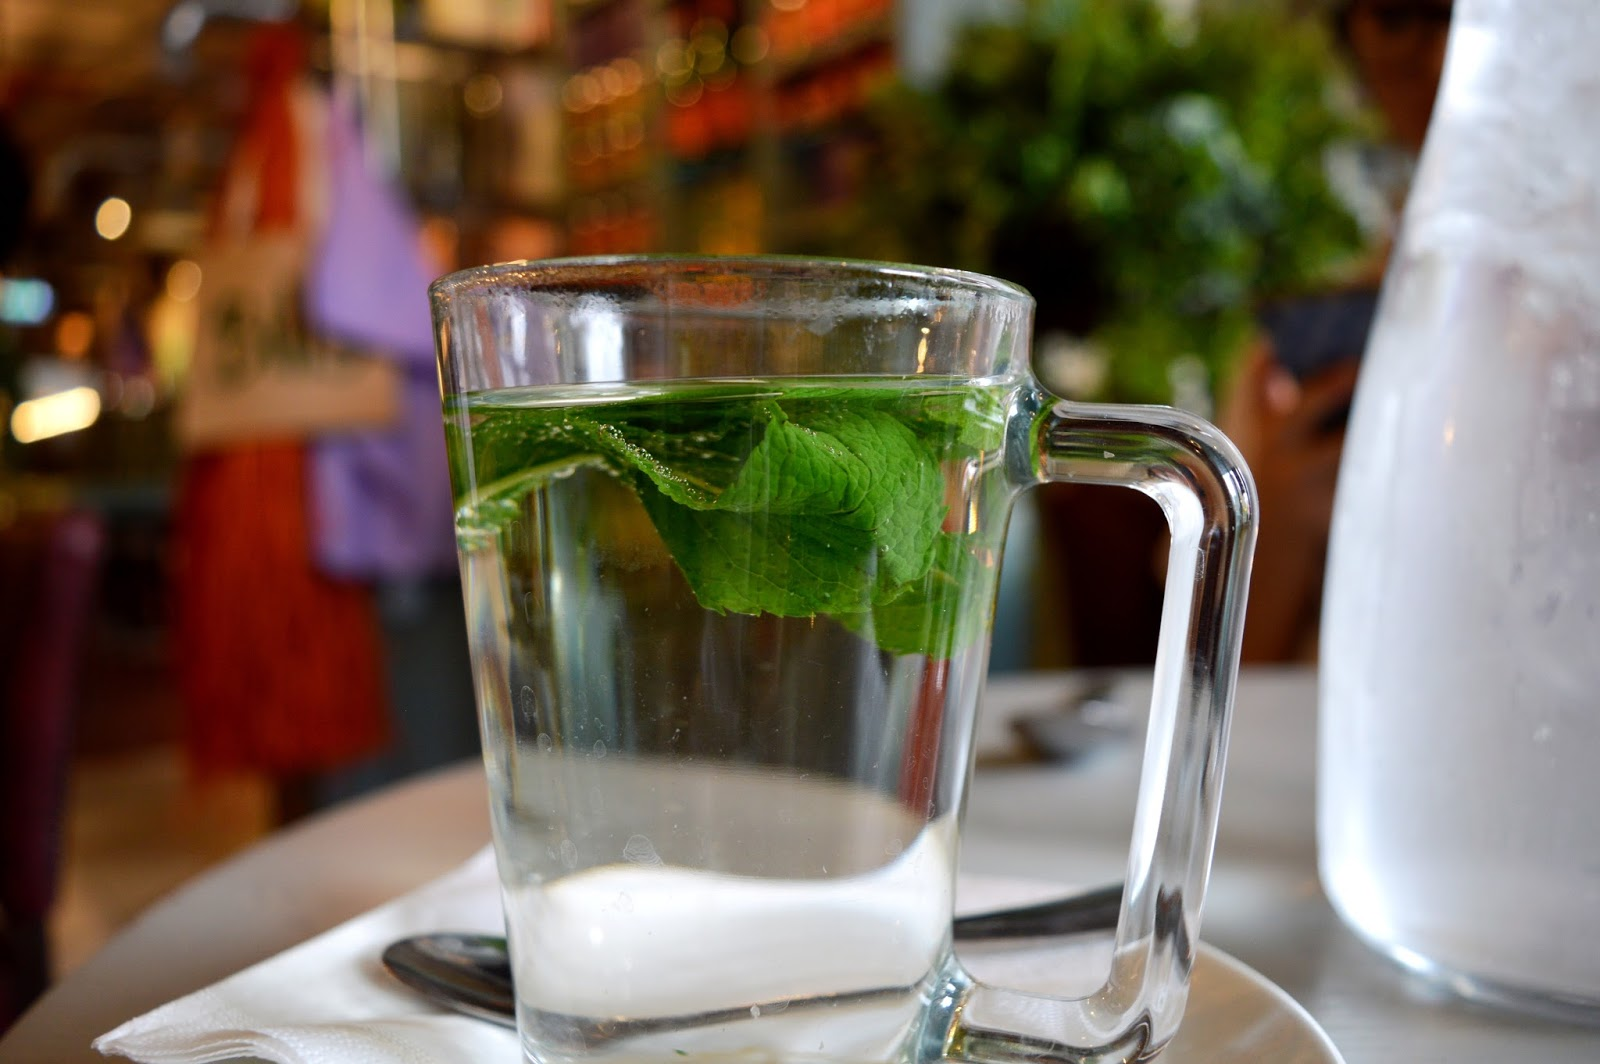 Bill's Restaurant review in southampton, fresh peppermint tea, Bill's in Southampton